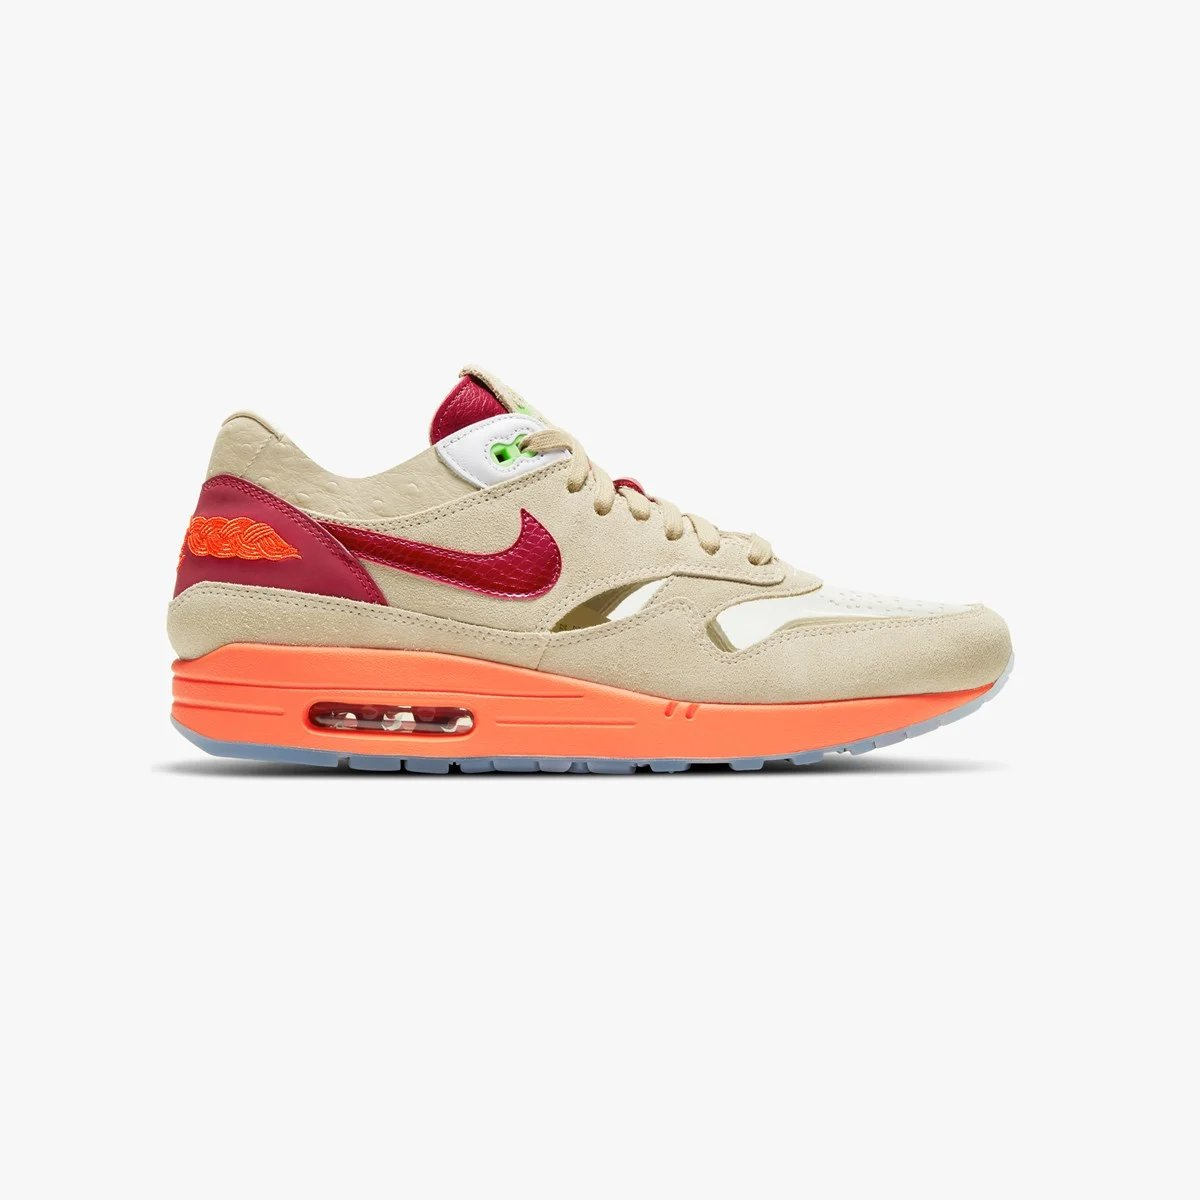 SNS online raffle live for the Clot x Nike Air Max 1